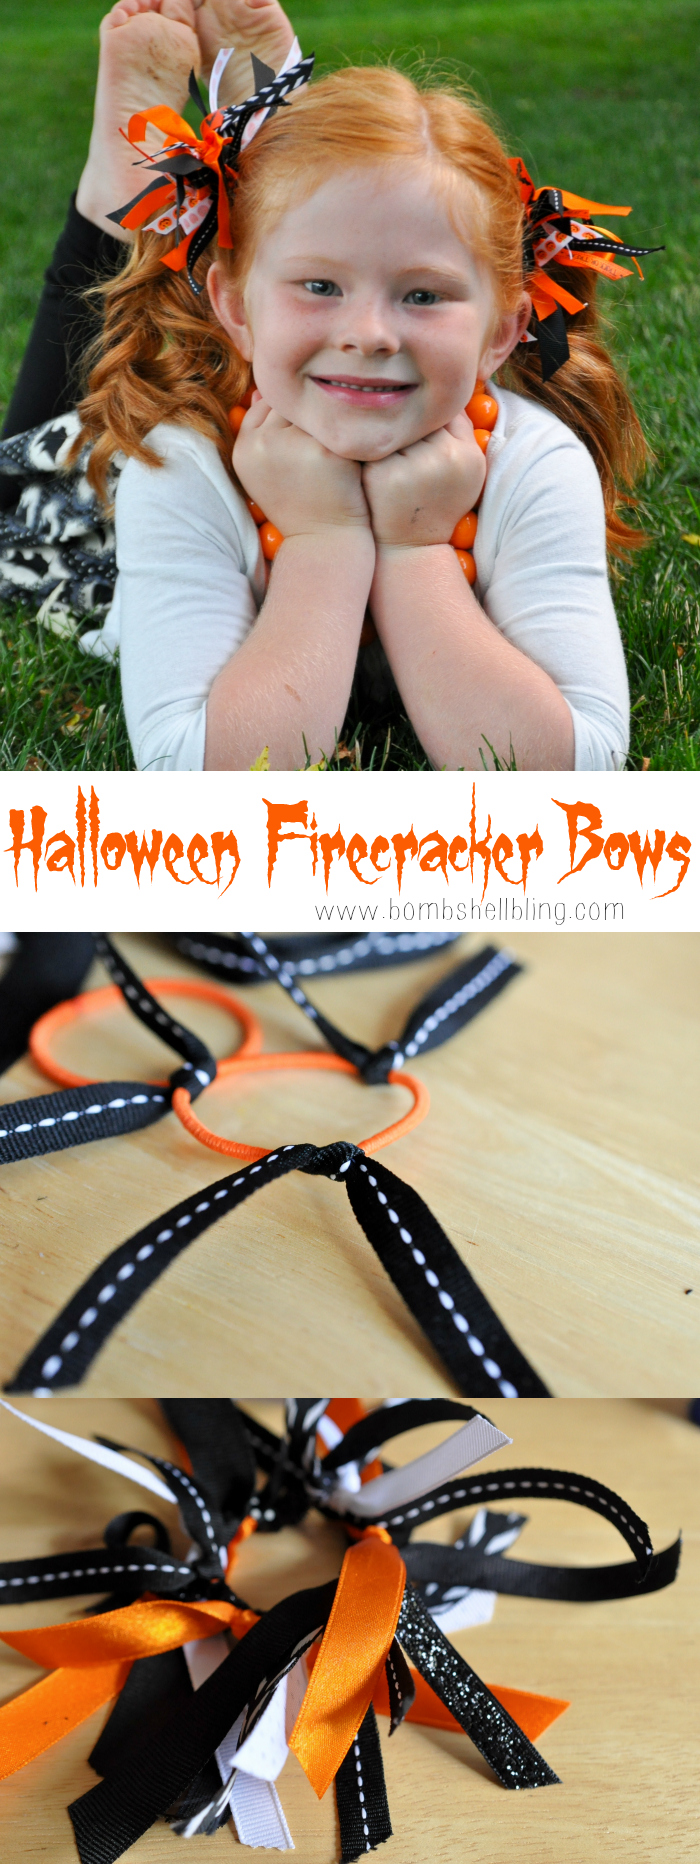 How to Make Halloween Firecracker Bows